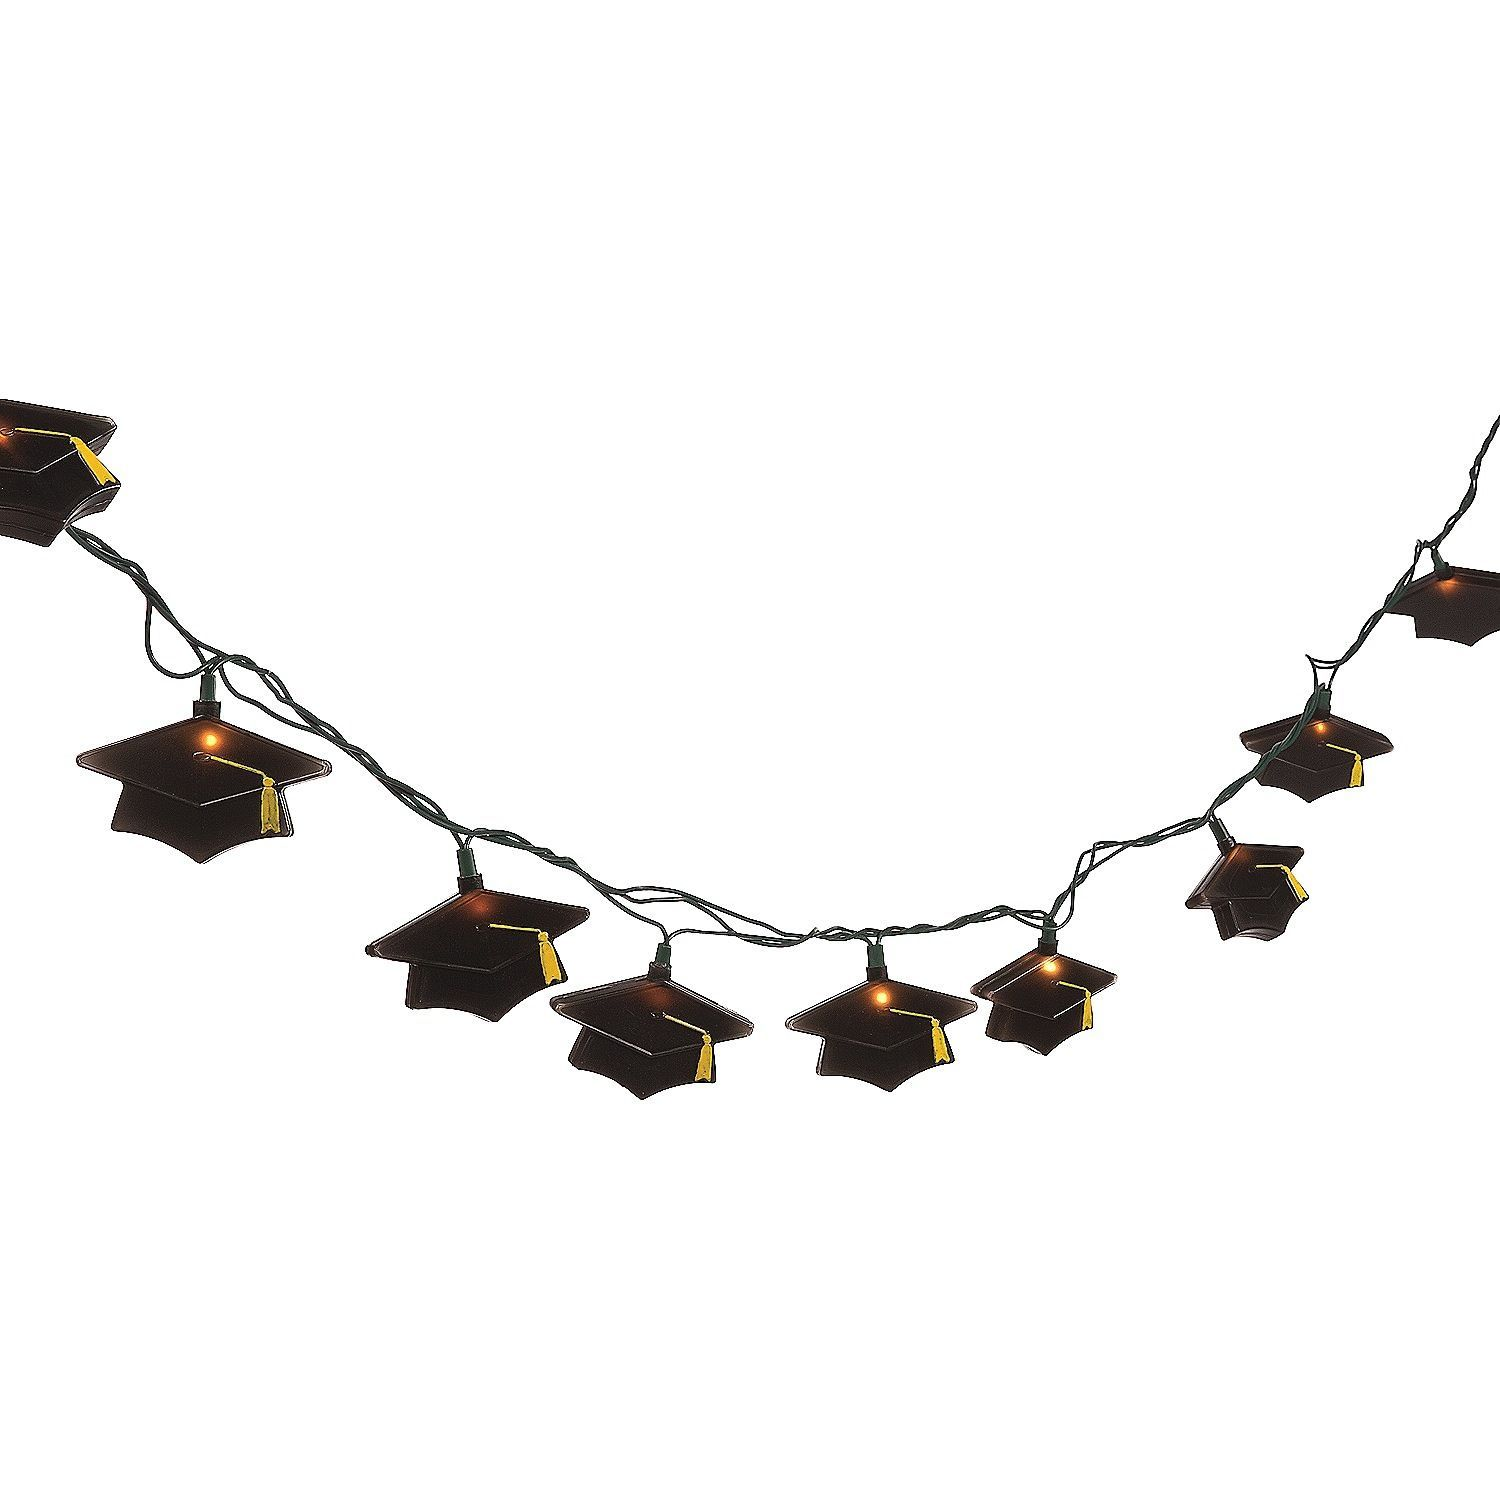 Graduation Hat Decorative Light String Set - Grad Party Decoration - Mortar, Cap